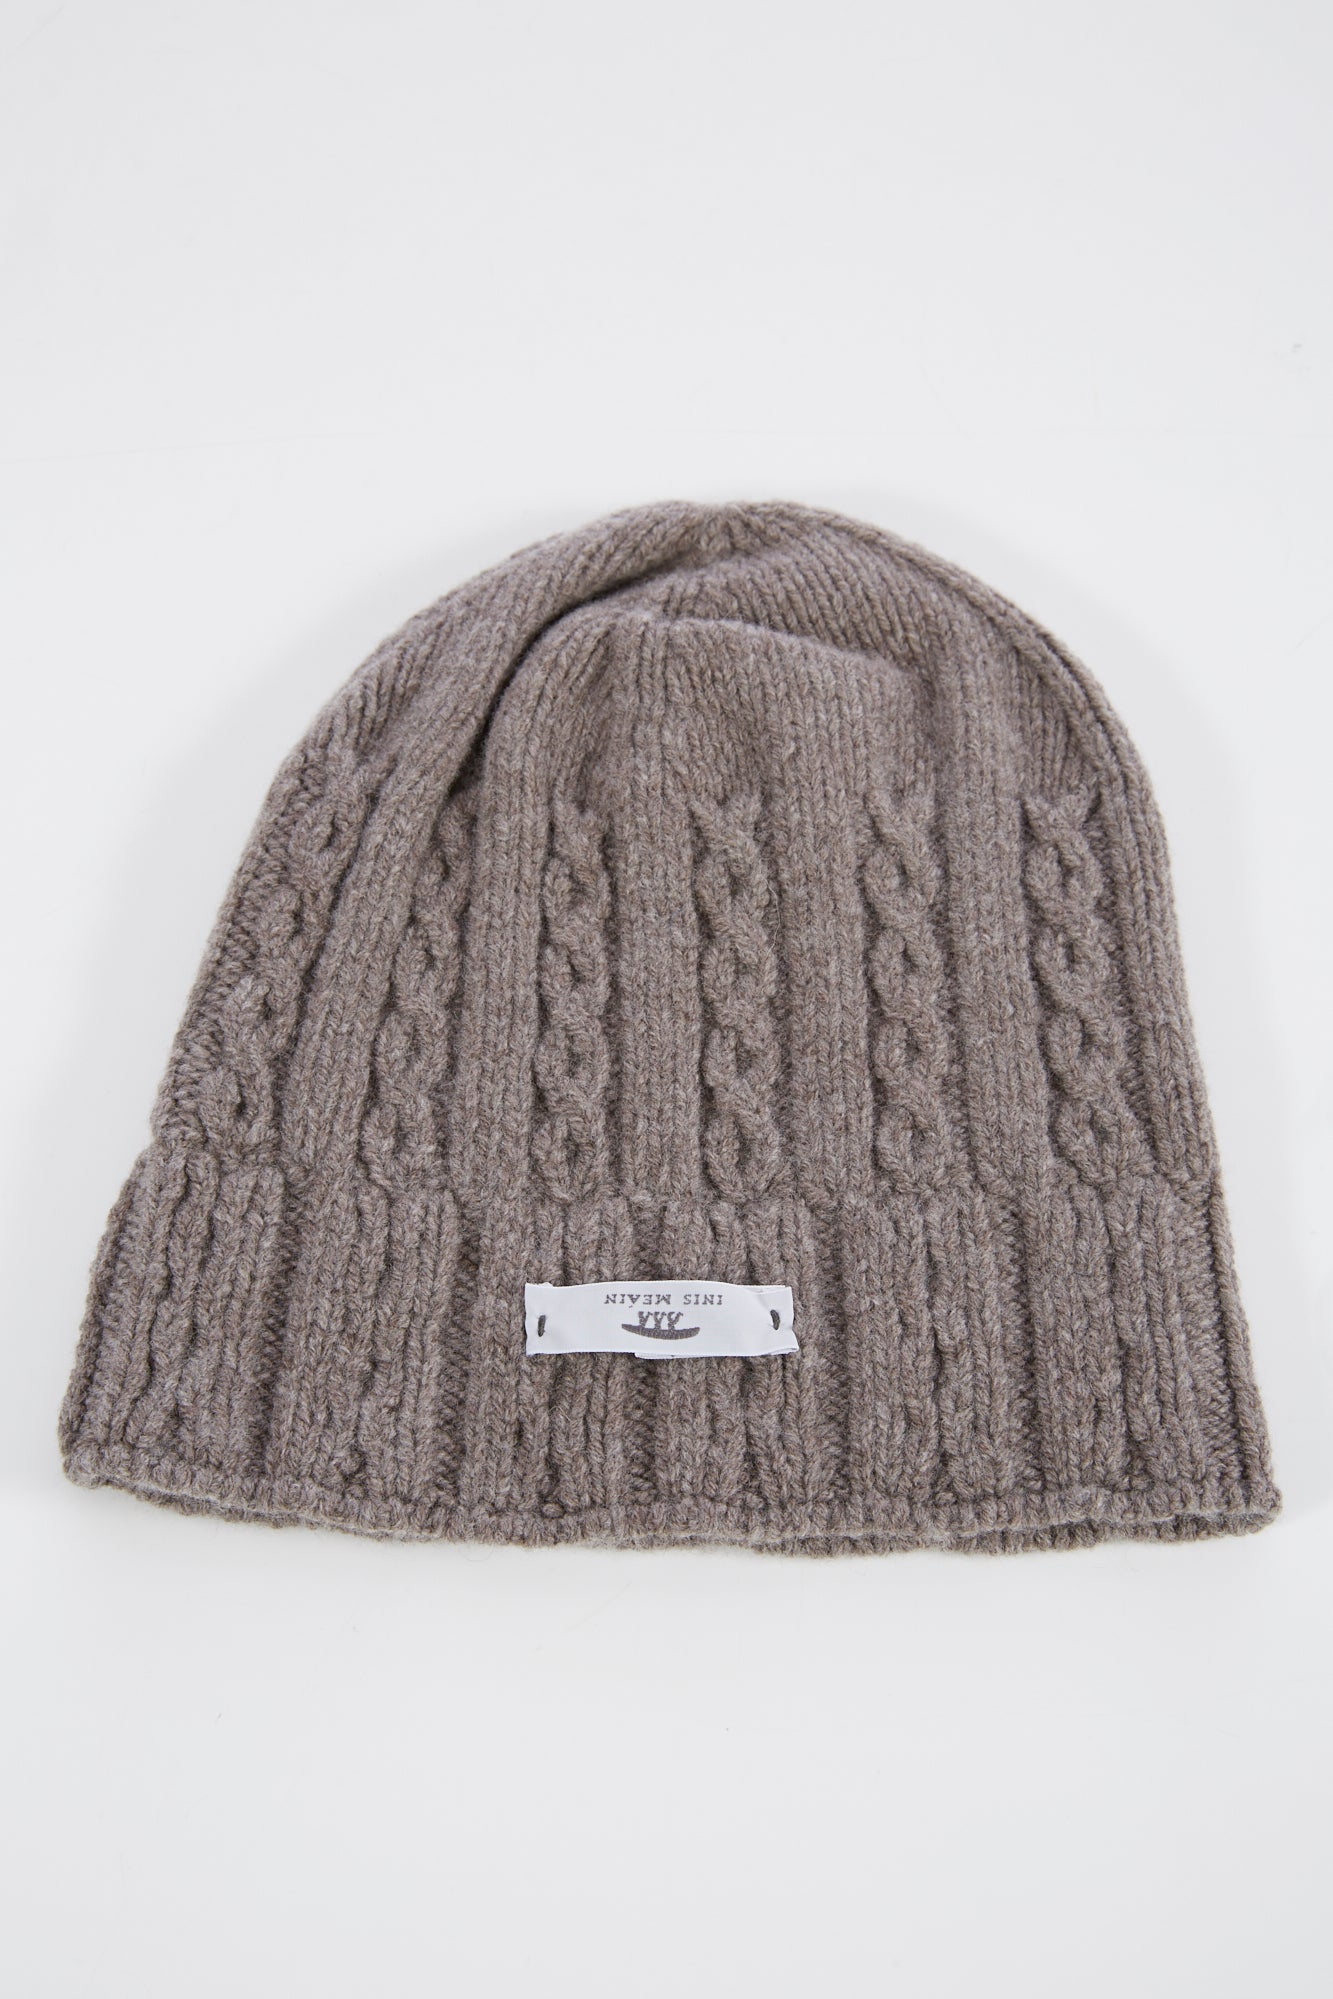 Inis Meain Taupe Cashmere-Wool Fisherman Cap - Accessories - Inis Meáin - LALONDE's